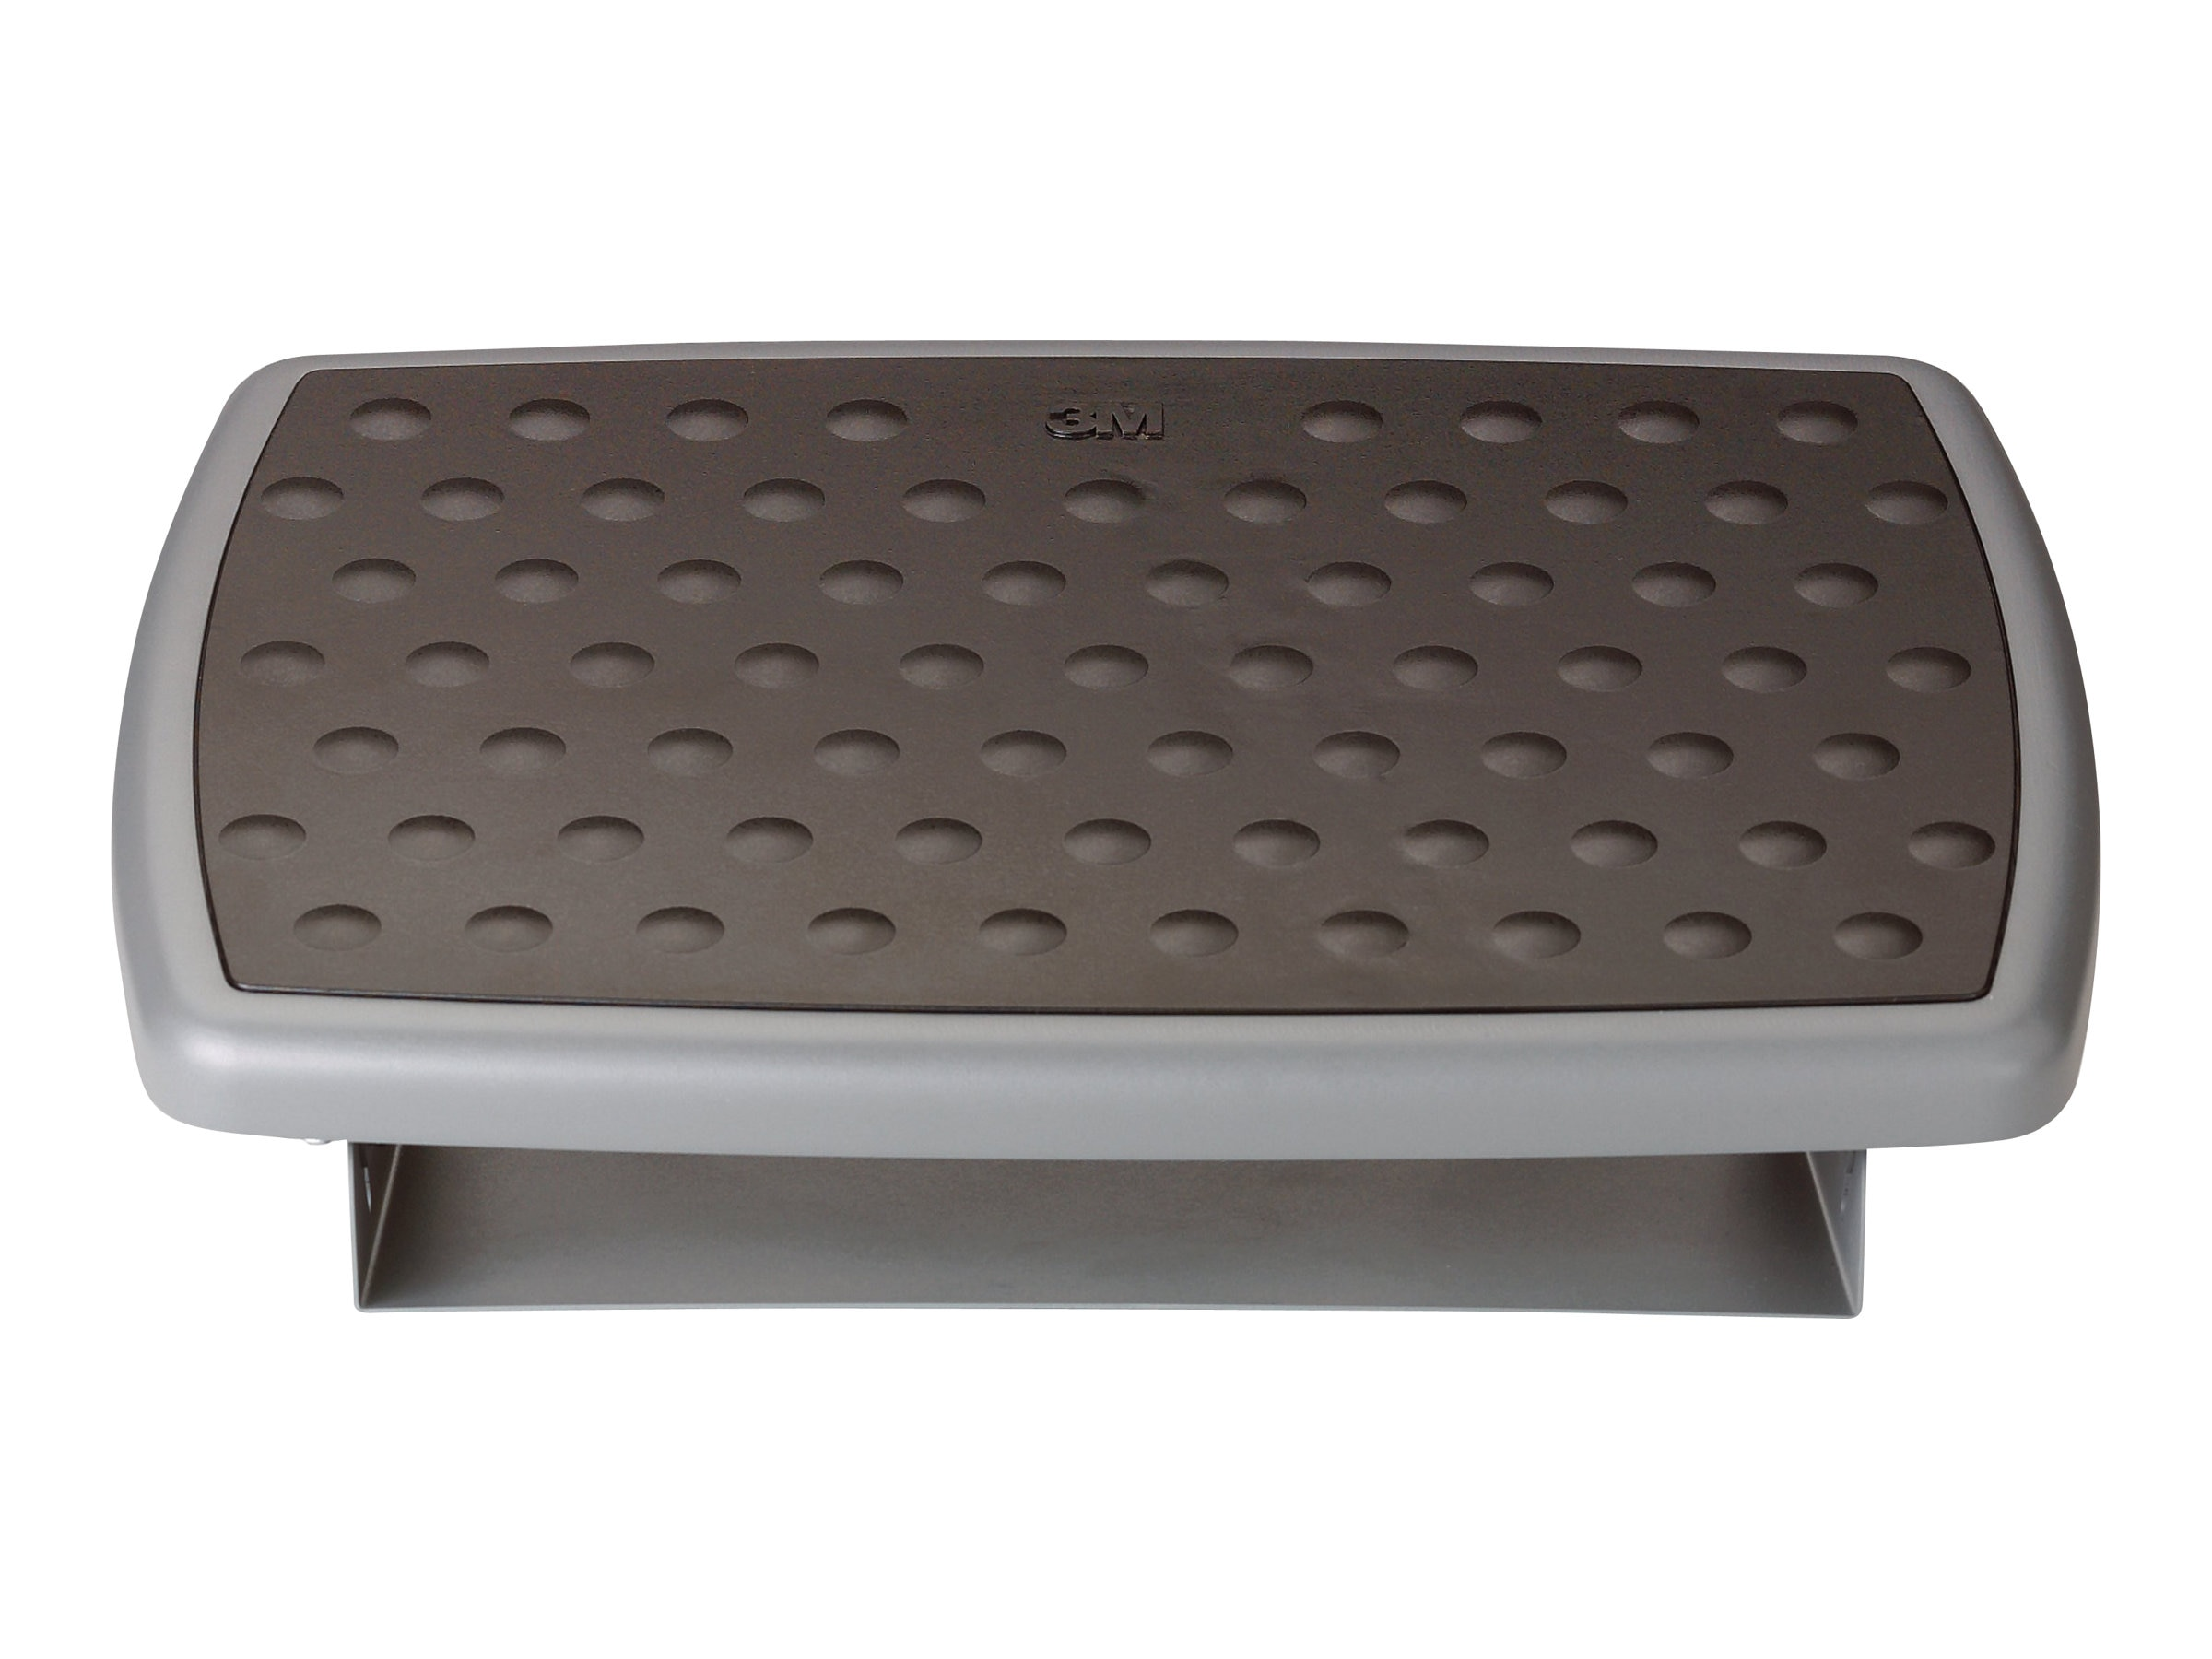 3M Adjustable Footrest, Charcoal, FR330, 7797411, Ergonomic Products